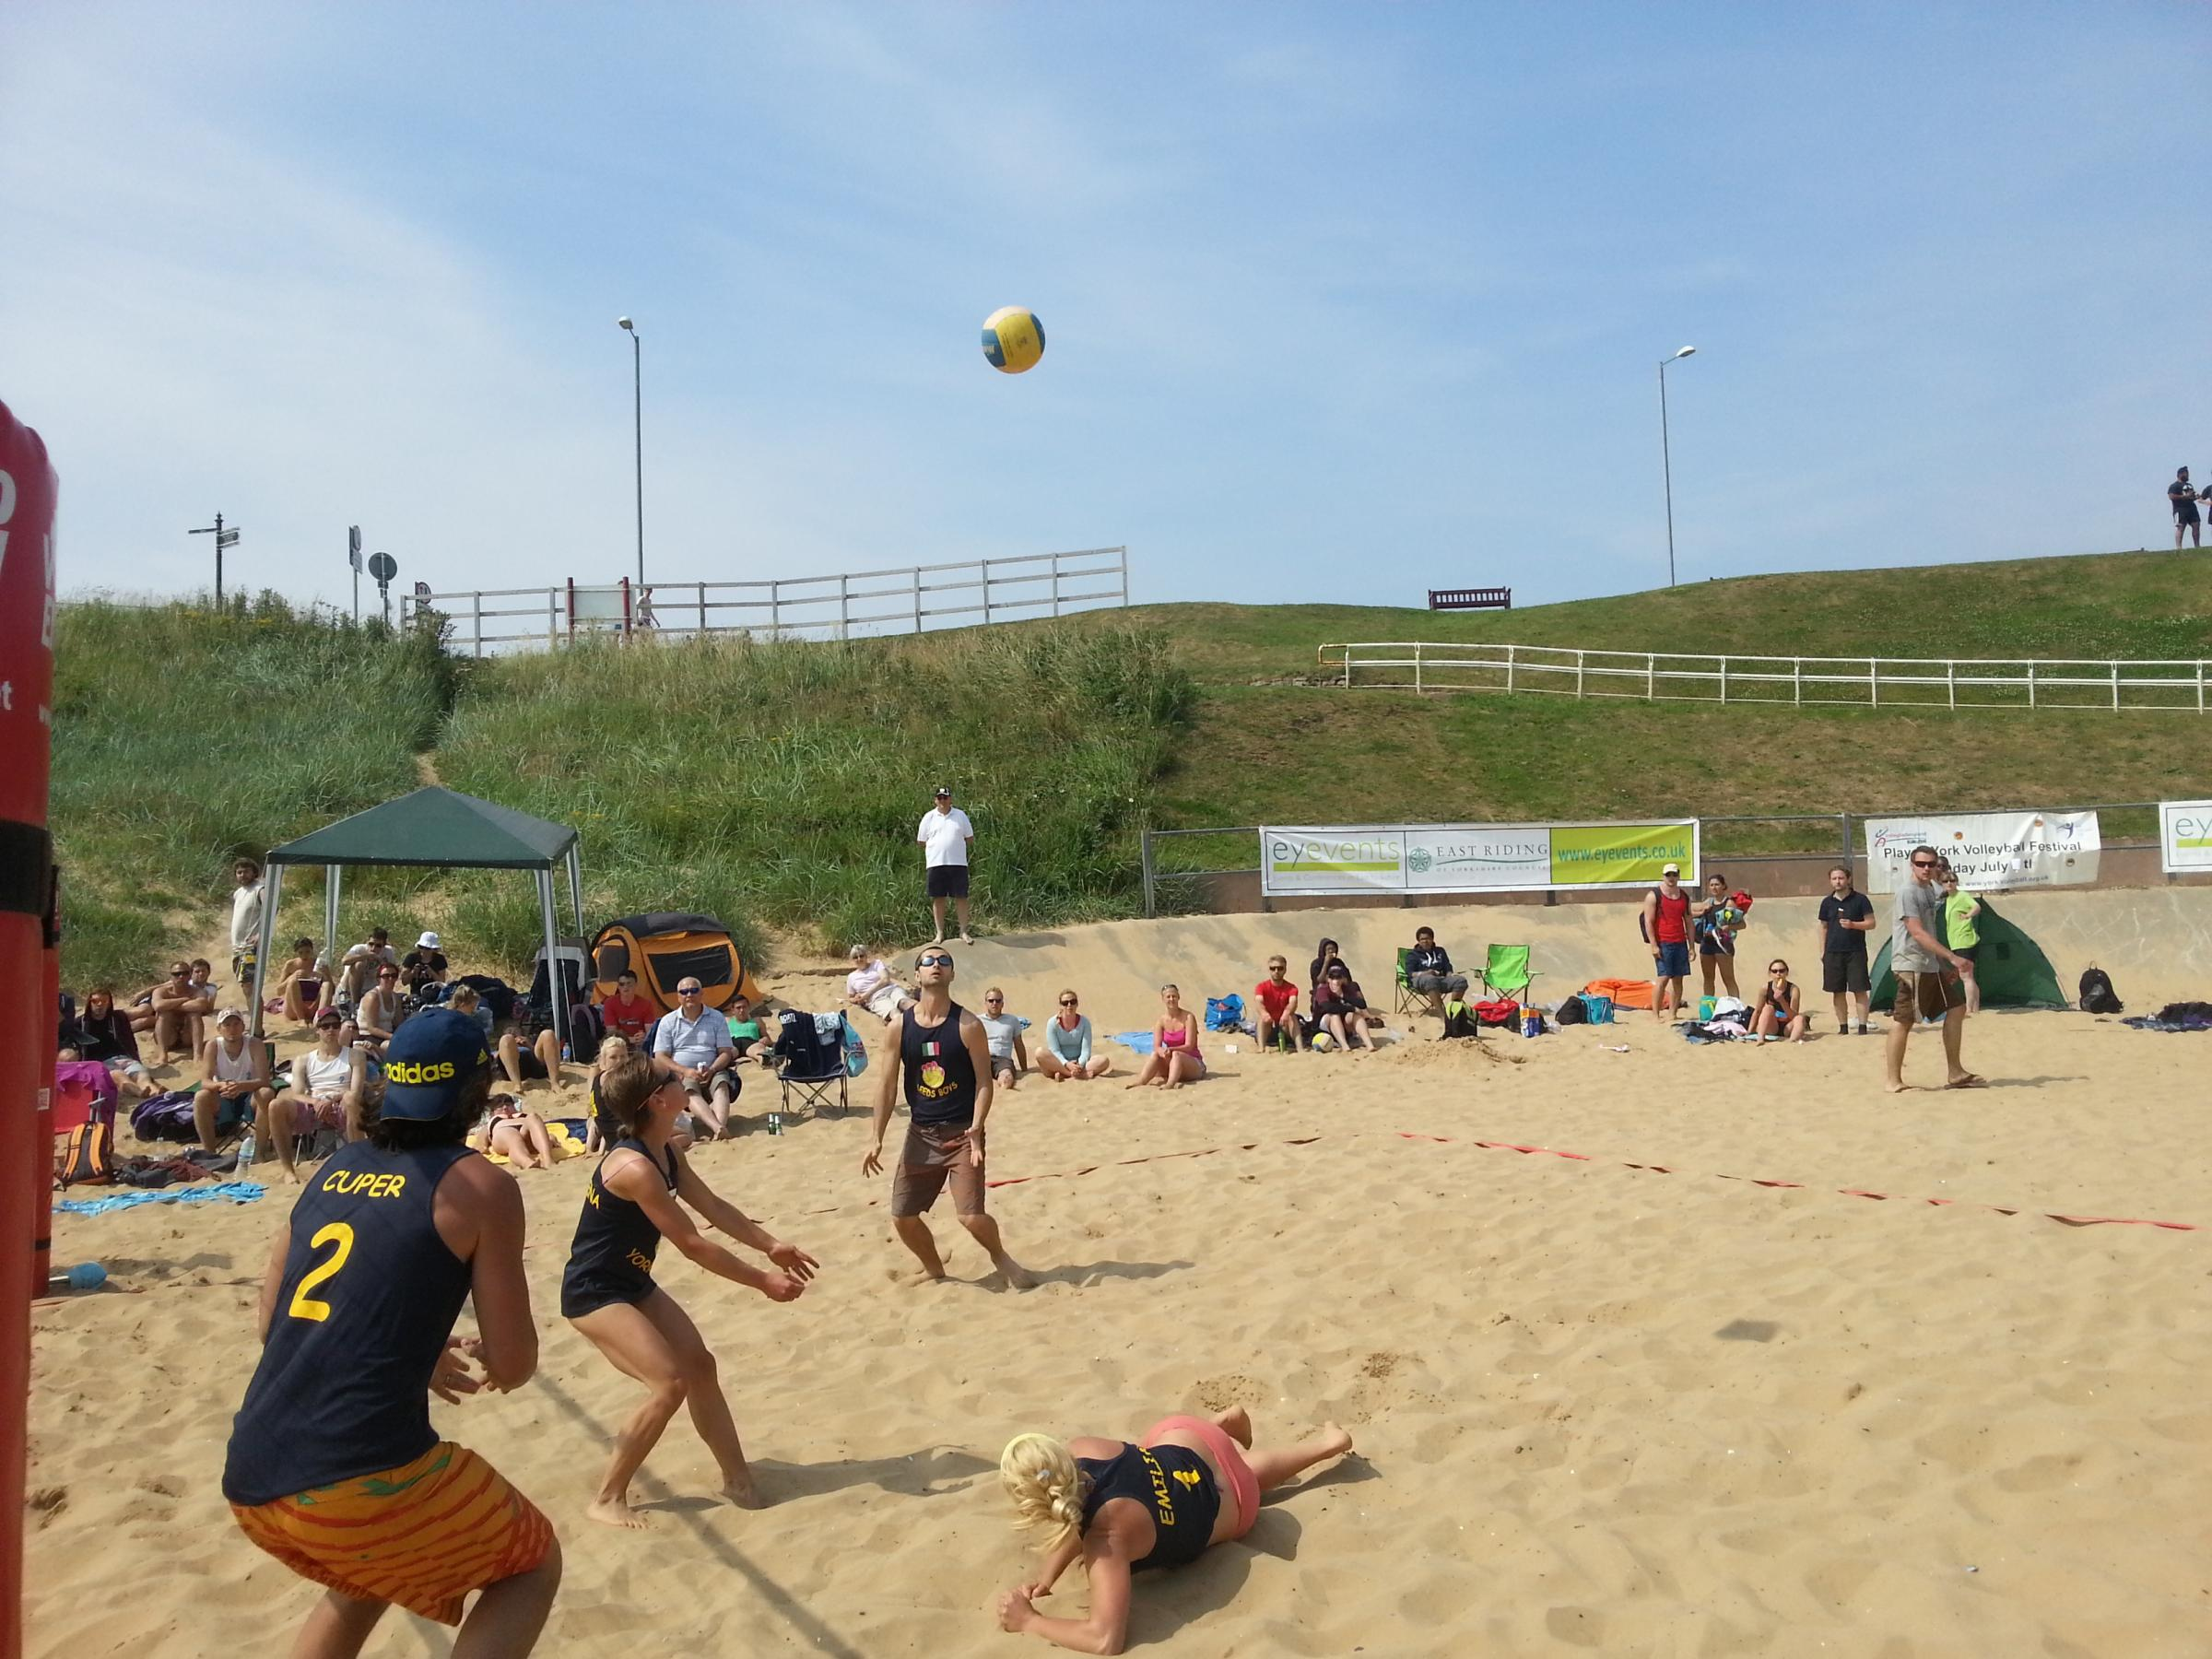 Volleyball at Bridlington South Beach.